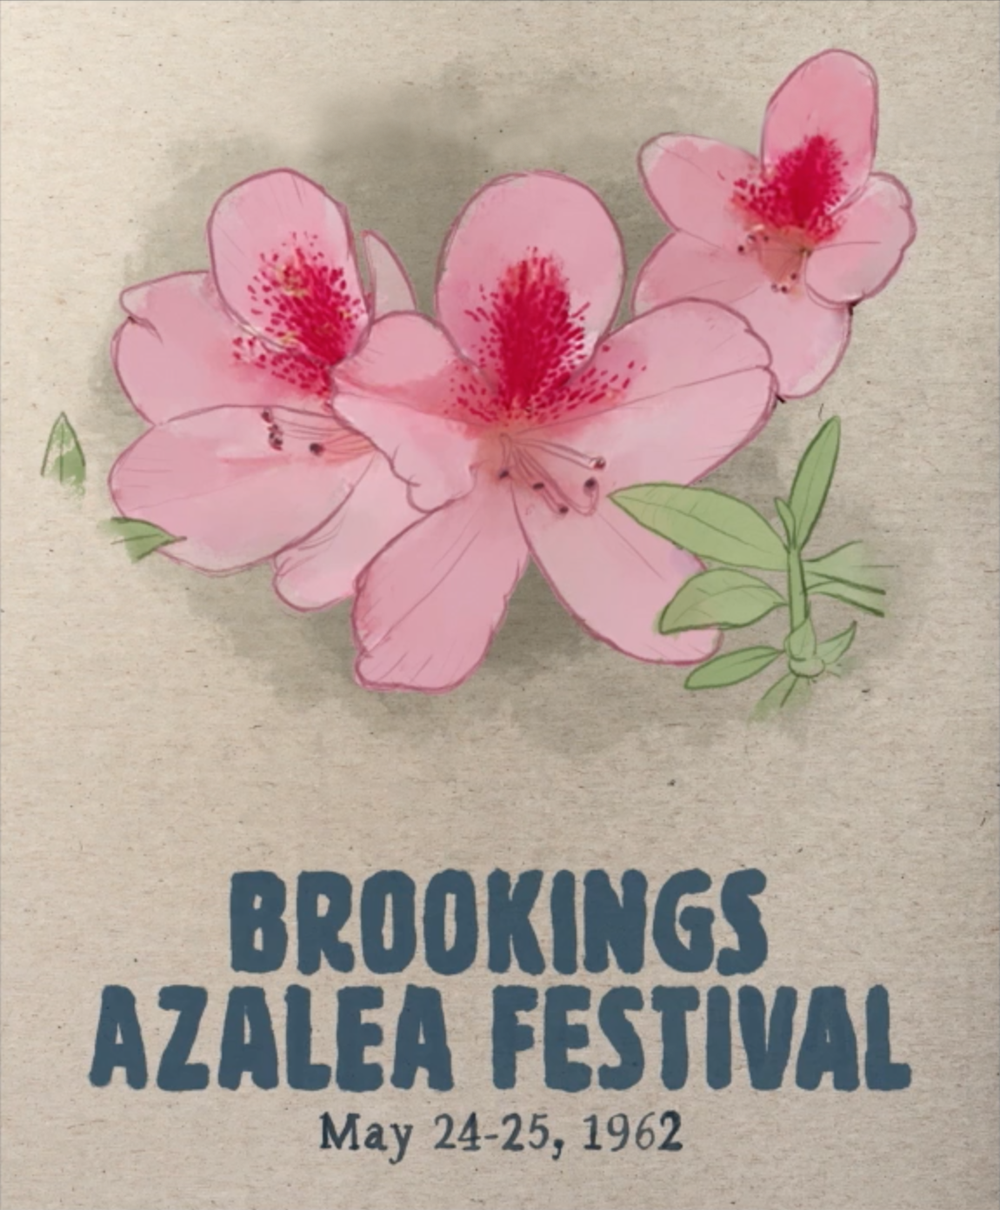 Illustration:  Poster for the Brookings Azalea Festival (Illustration by Zak Margolis)